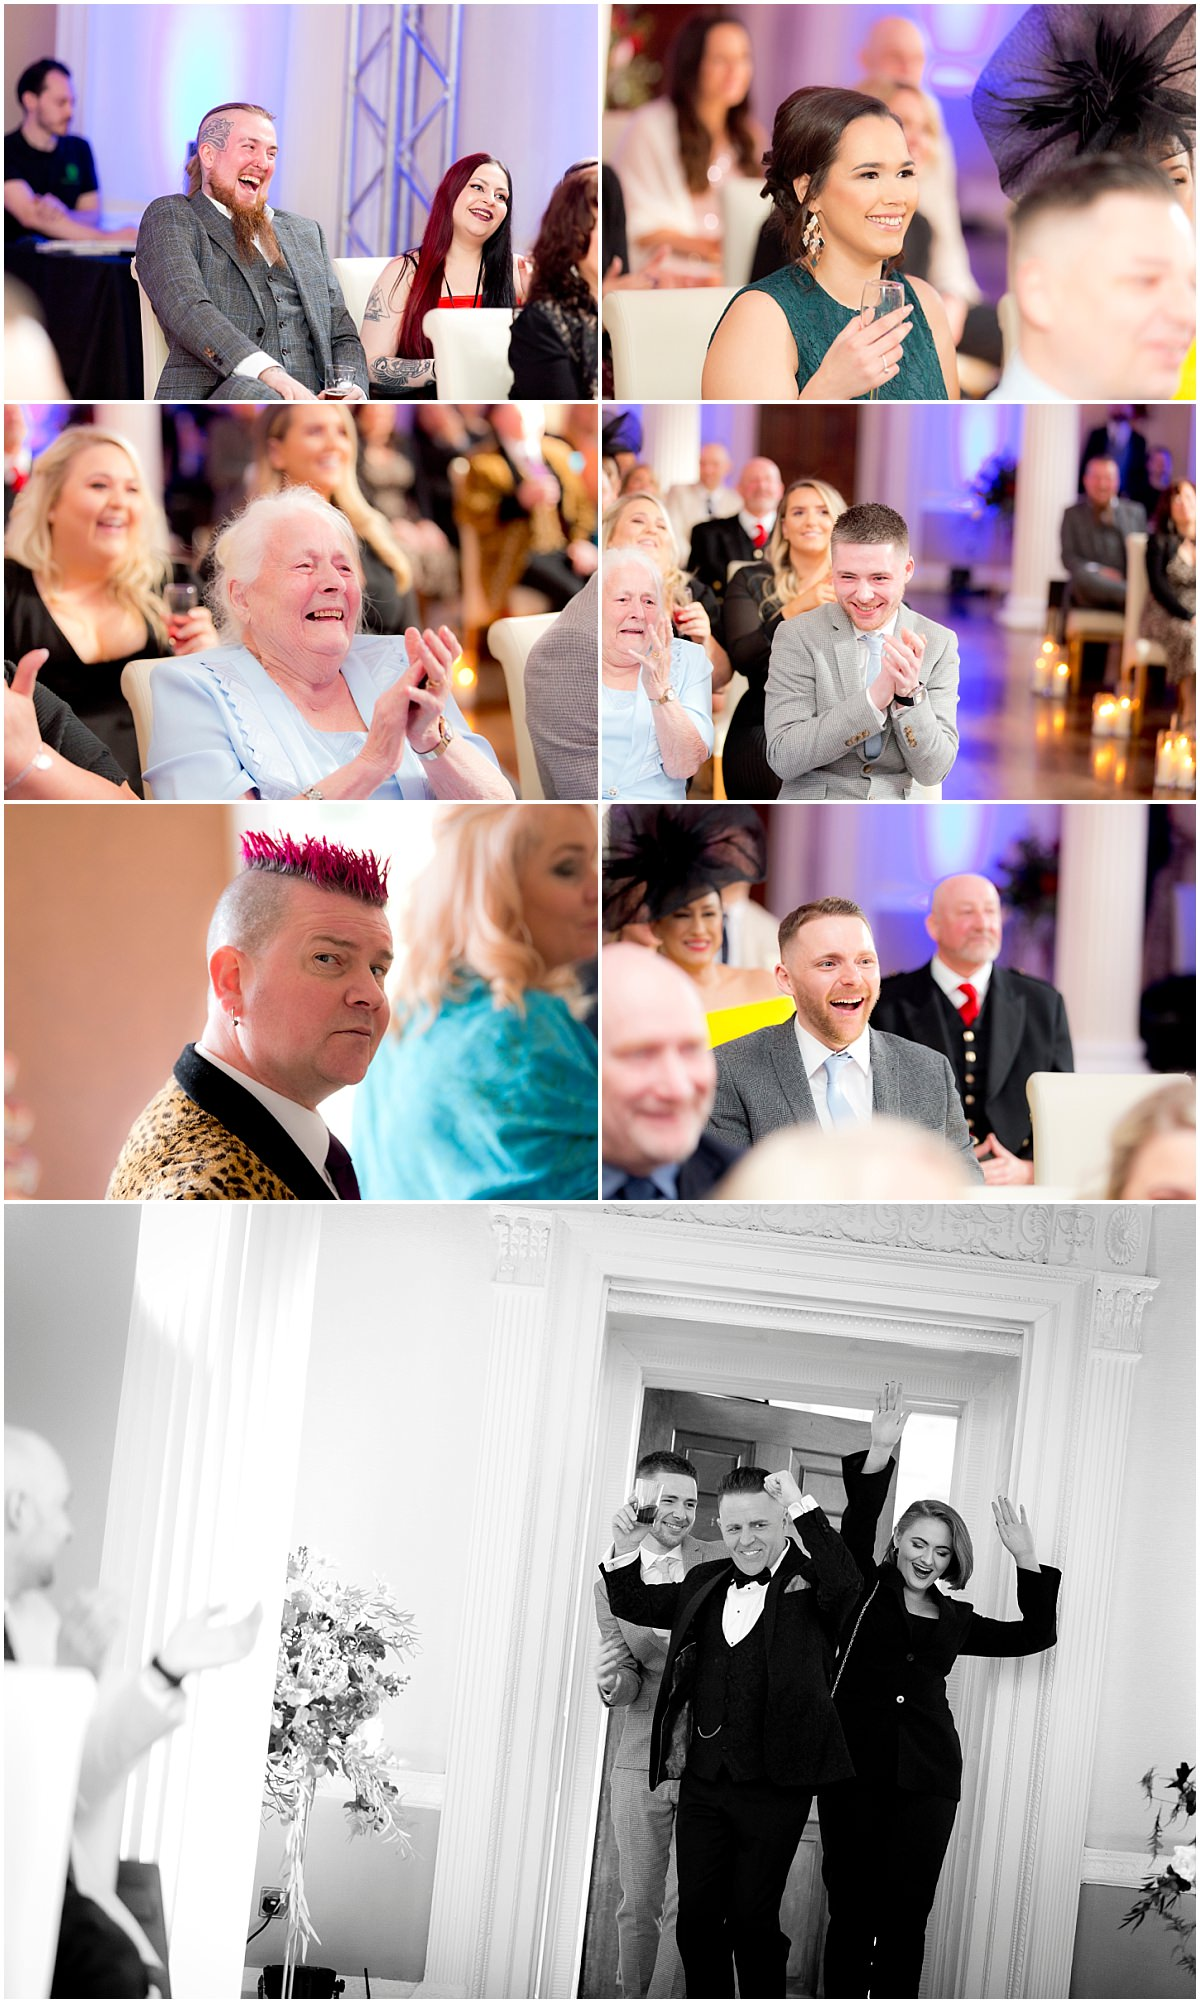 Wedding guests at Colwick Hall